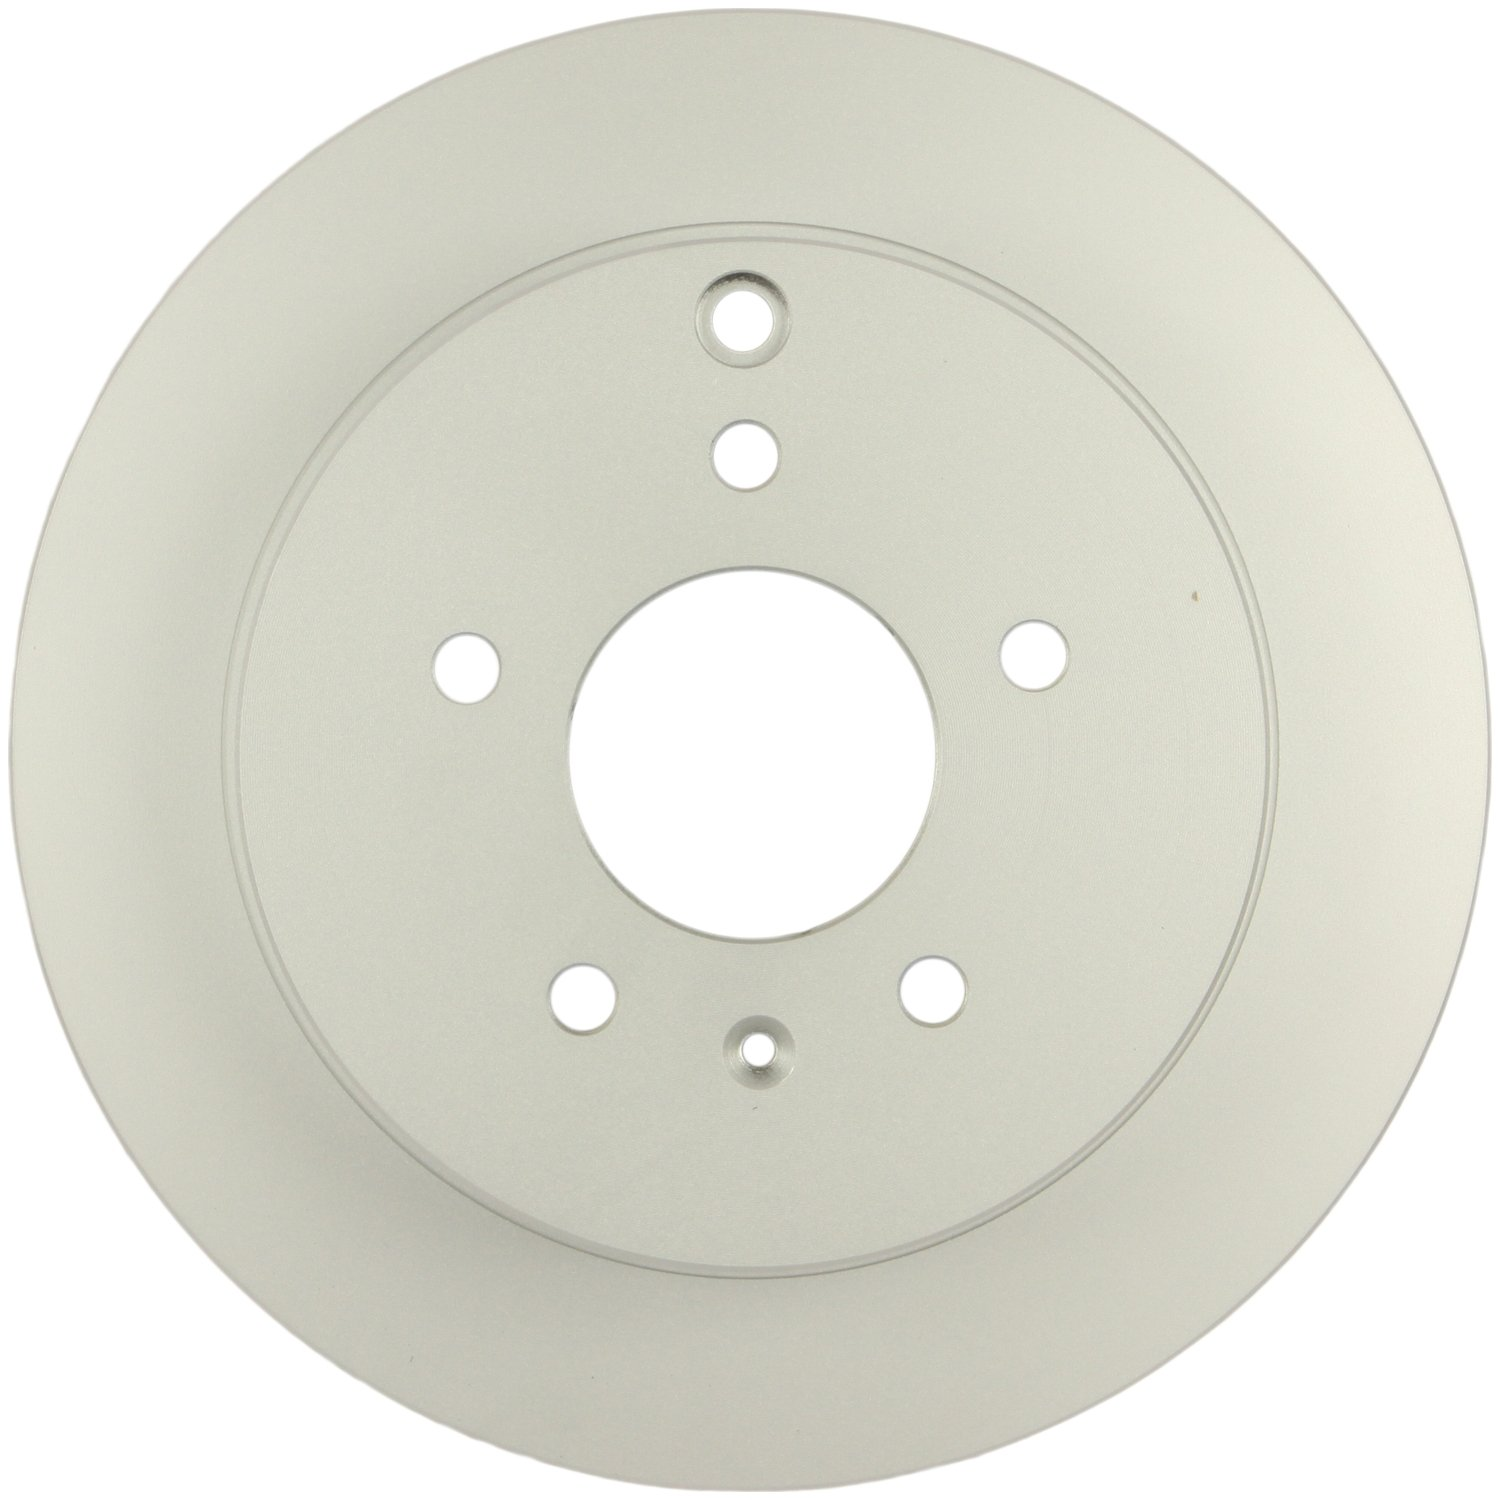 Bosch 25010698 QuietCast Premium Disc Brake Rotor